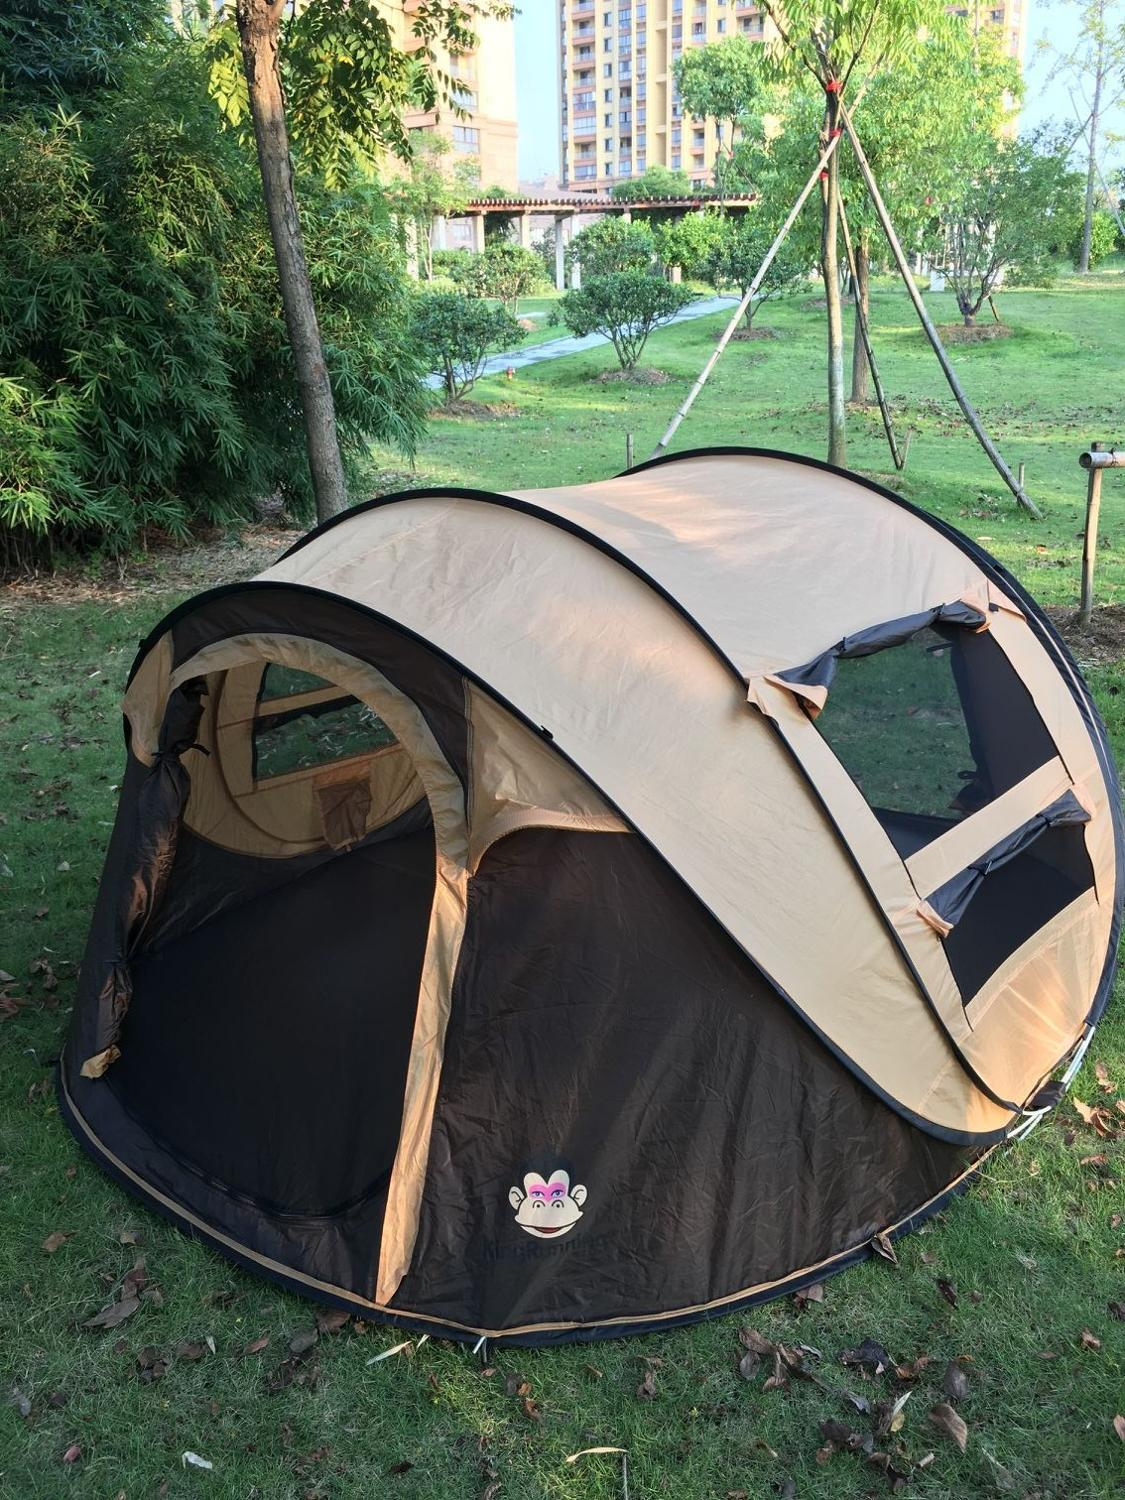 Good quality Outdoor /C&ing tent/Pop up Tent-in Tents from Sports u0026 Entertainment on Aliexpress.com | Alibaba Group & Good quality Outdoor /Camping tent/Pop up Tent-in Tents from ...